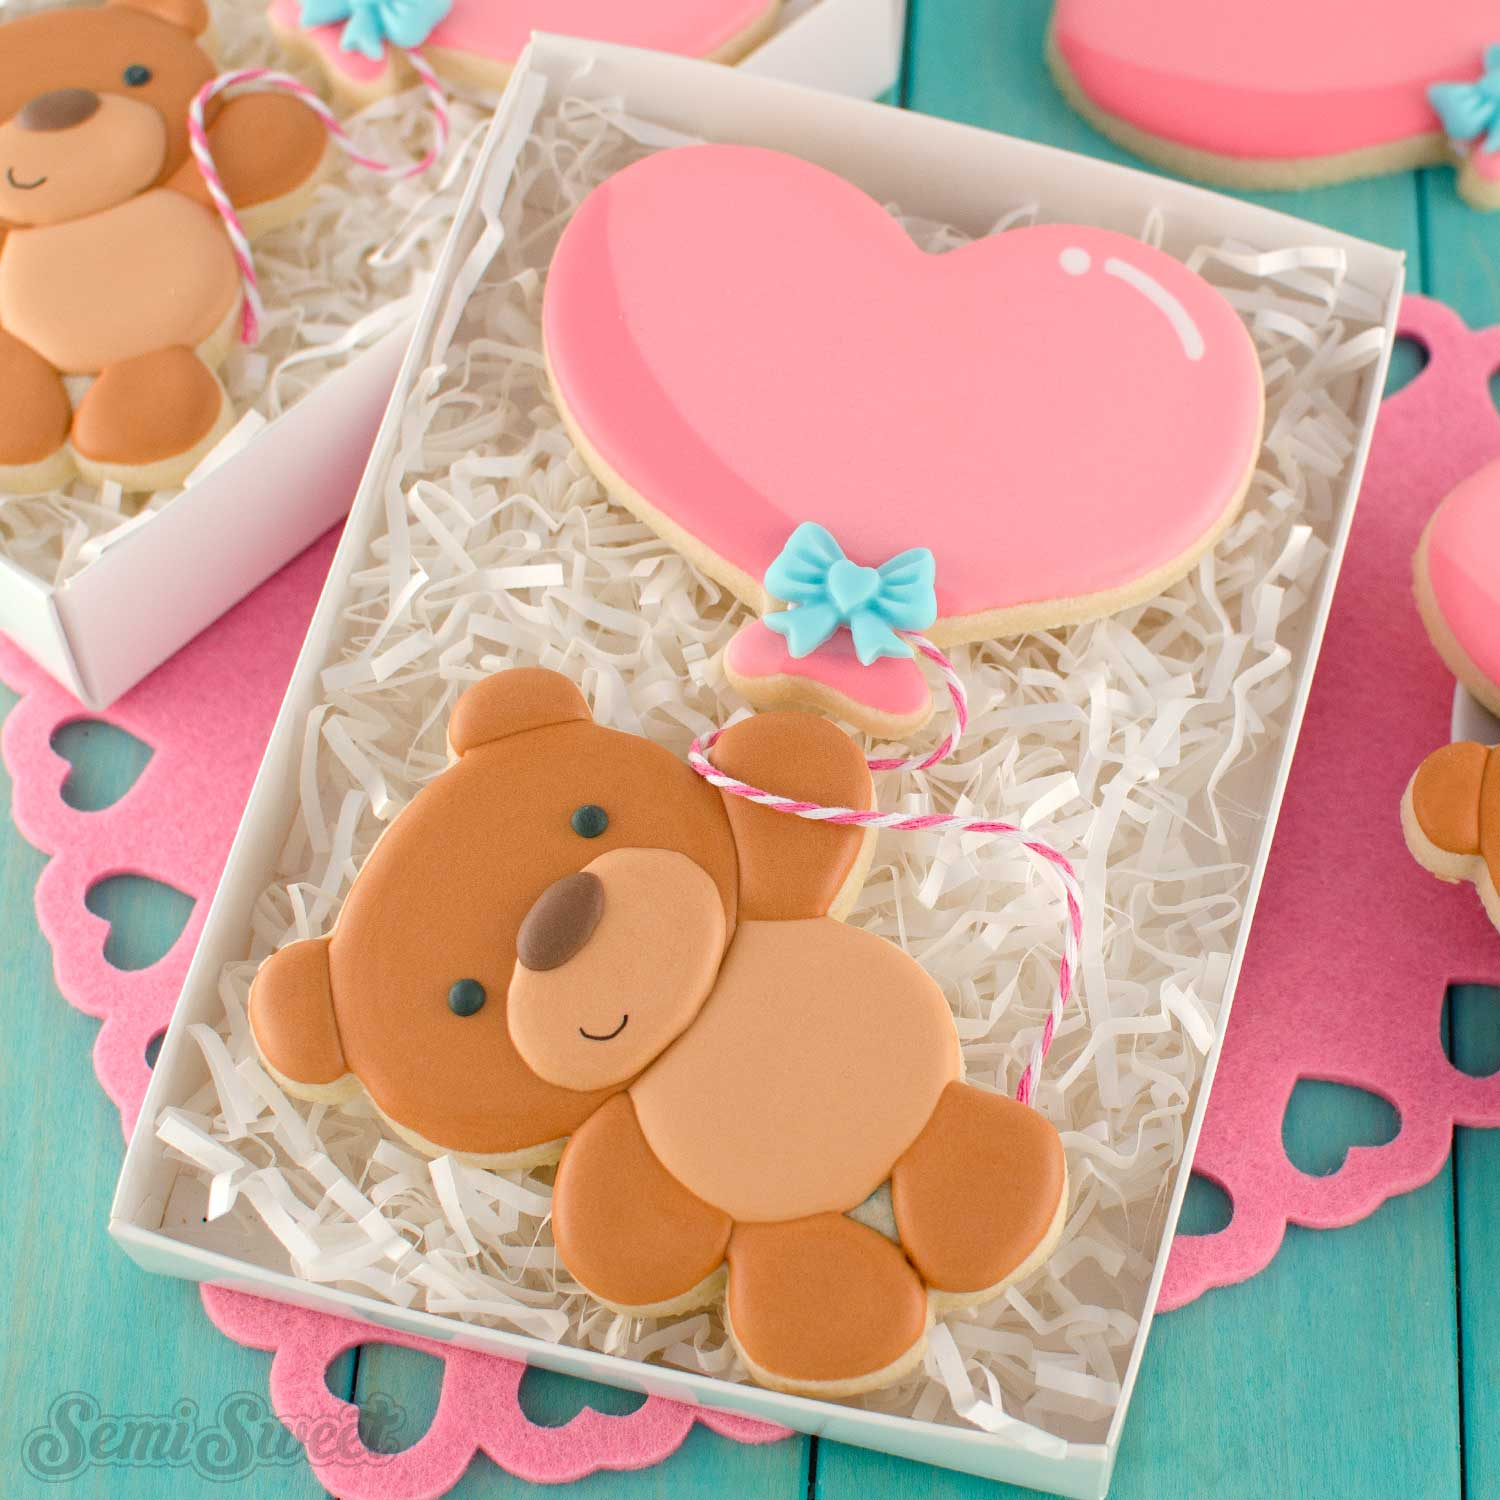 How to Make a Balloon Teddy Bear Cookie Set